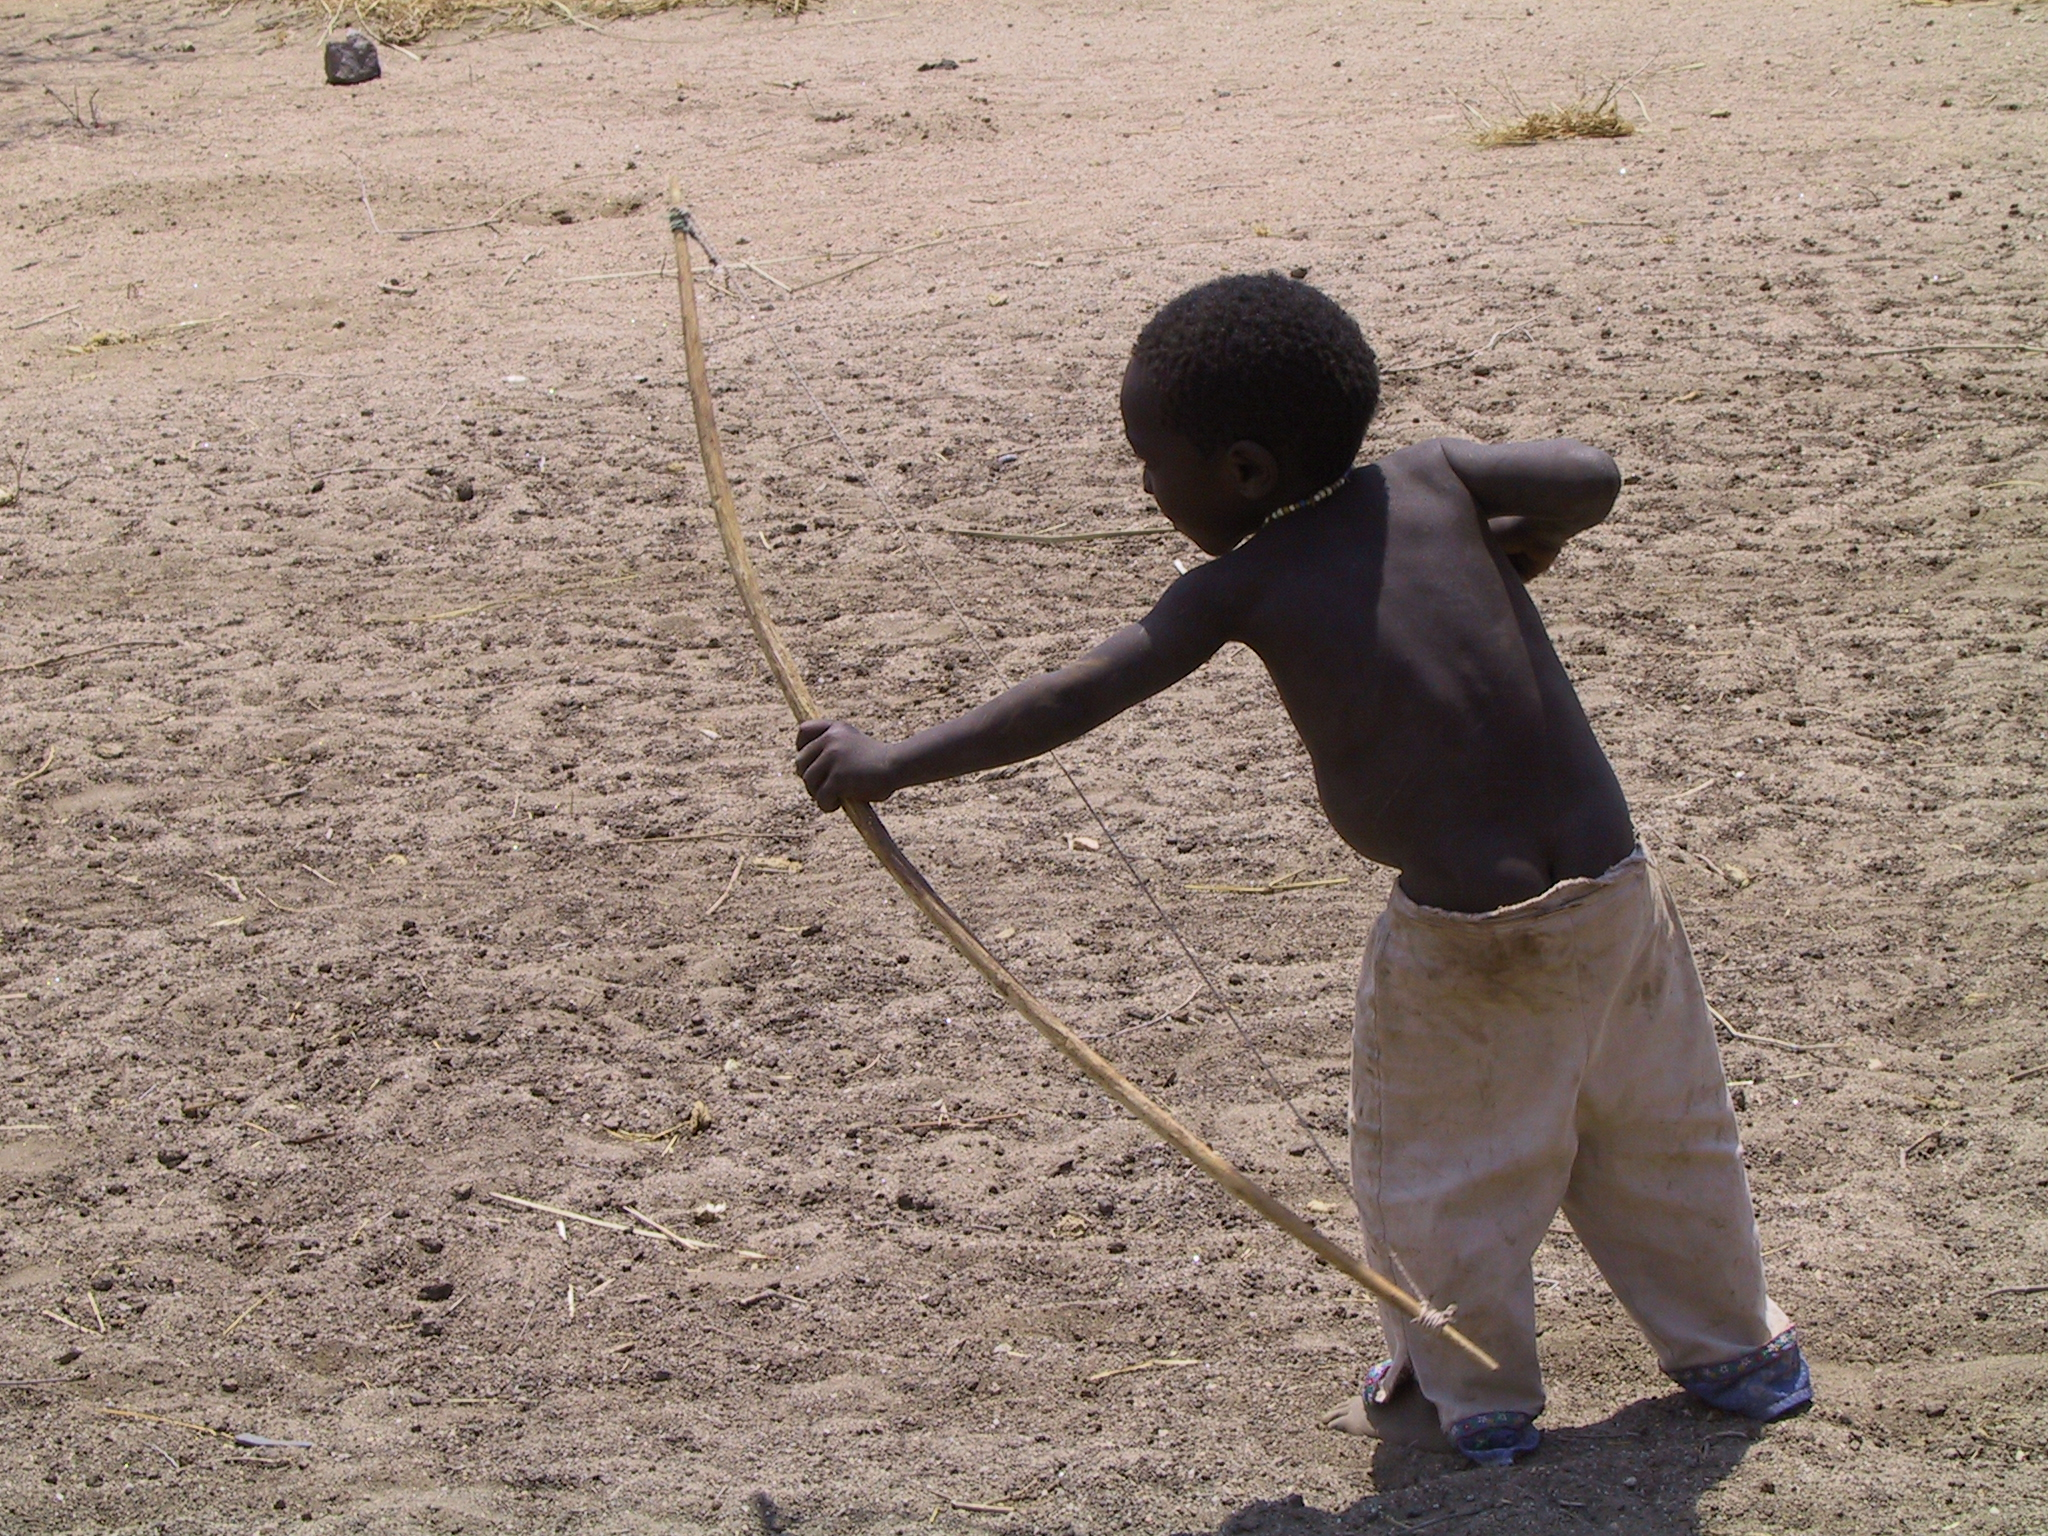 A member of the Hadza tribe of Tanzania, a young boy practices his archery skills.